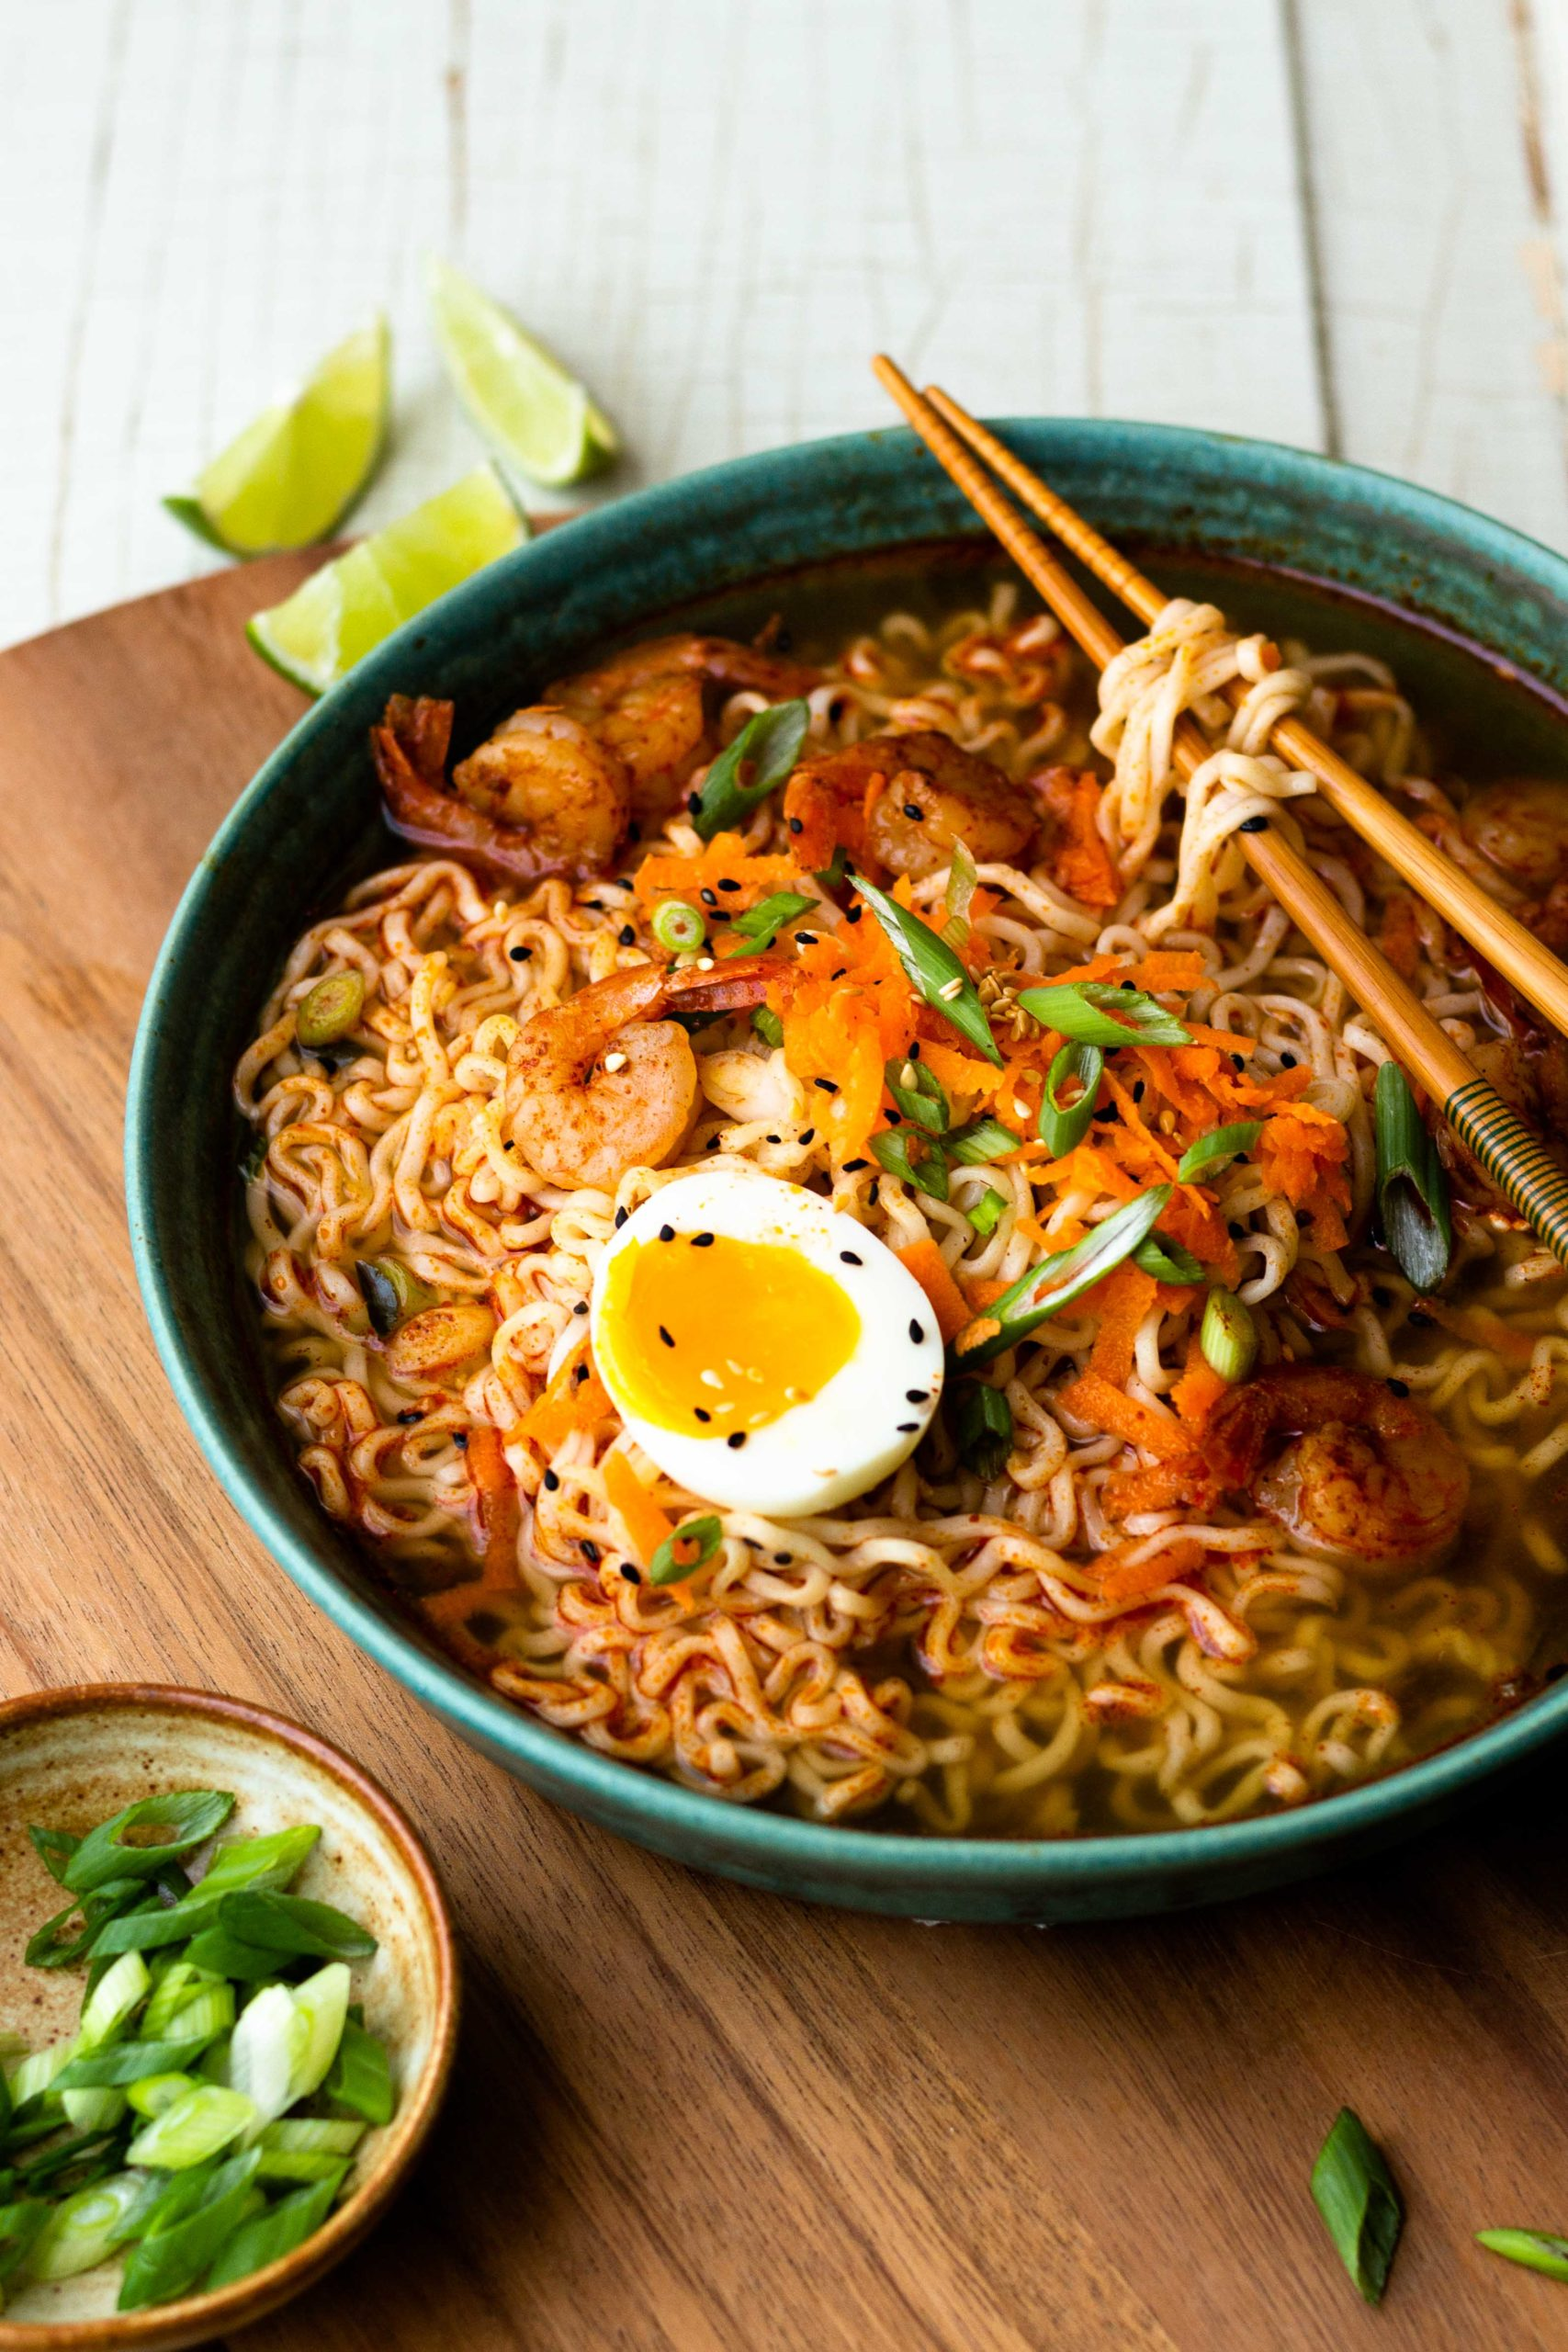 Homemade ramen noodle soup that is all made in one pot and ready in 30 minutes. Made with delicious chili lime seasoned broth, shrimp and lots of ramen noodles. A little spicy and so so good!!